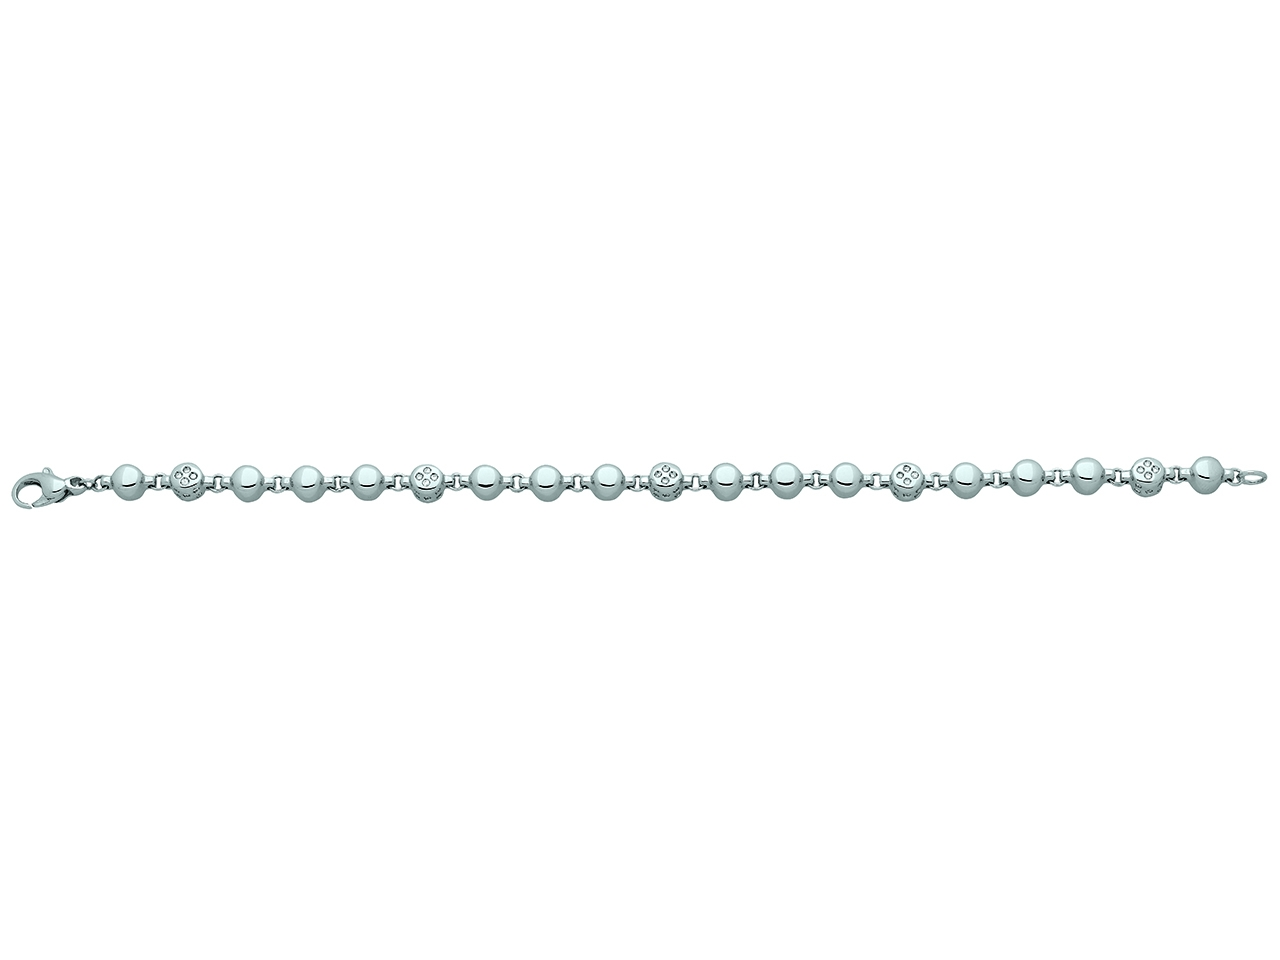 Bracelet petits cailloux, Or gris, diamants 0,54 ct